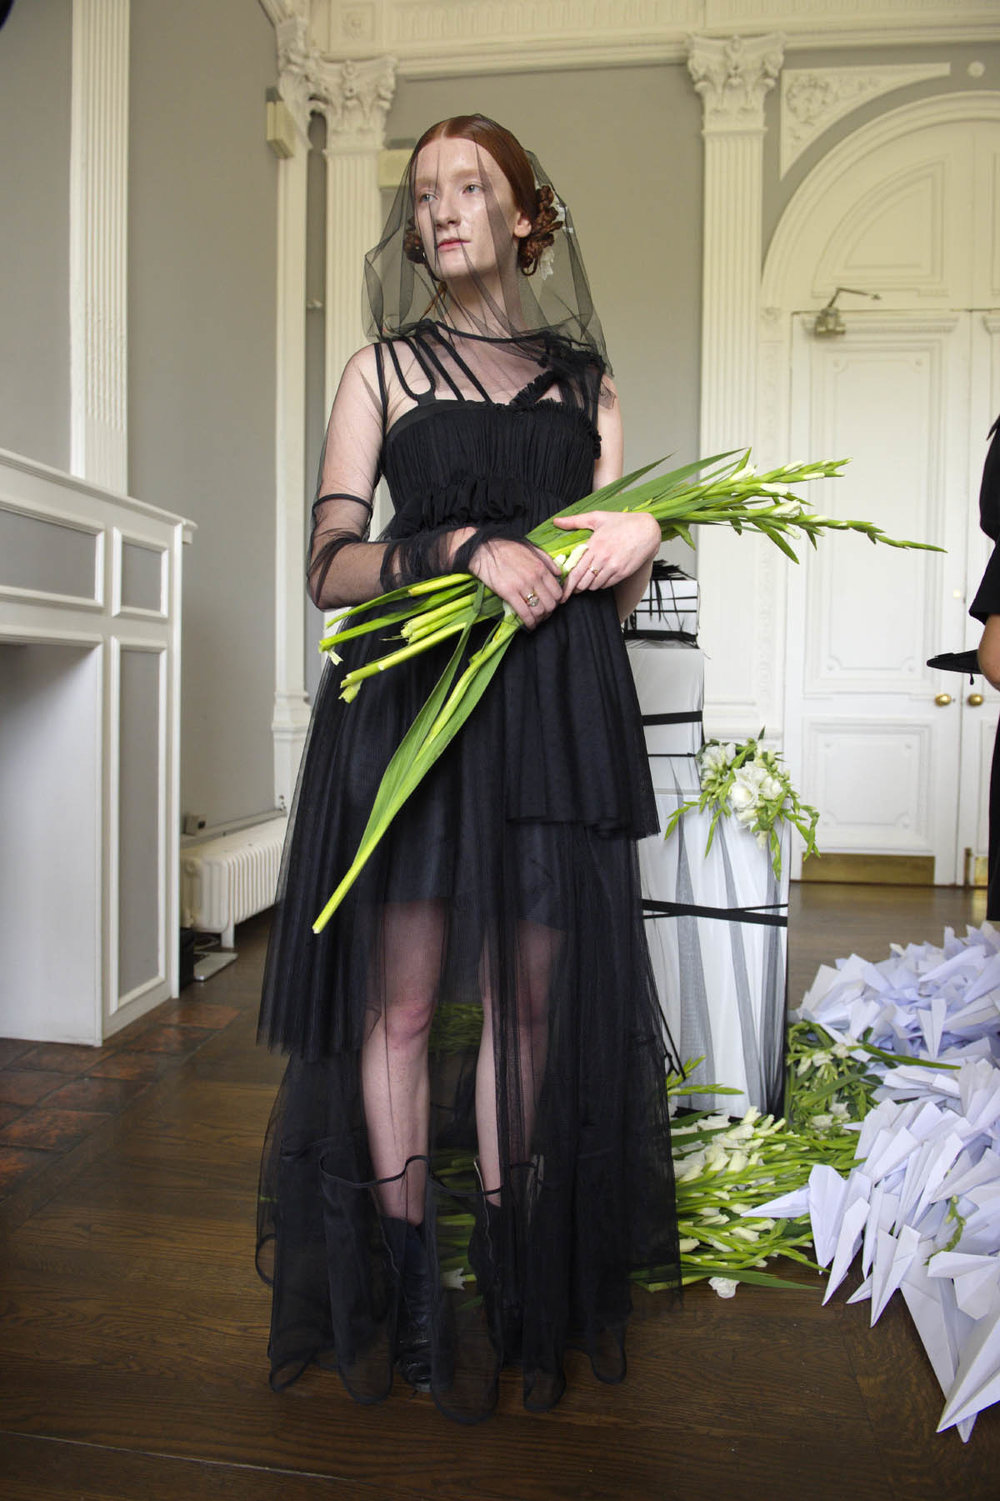 004A PHOEBE ENGLISH SS17 LOOK 7 - THE MOURNER.jpg